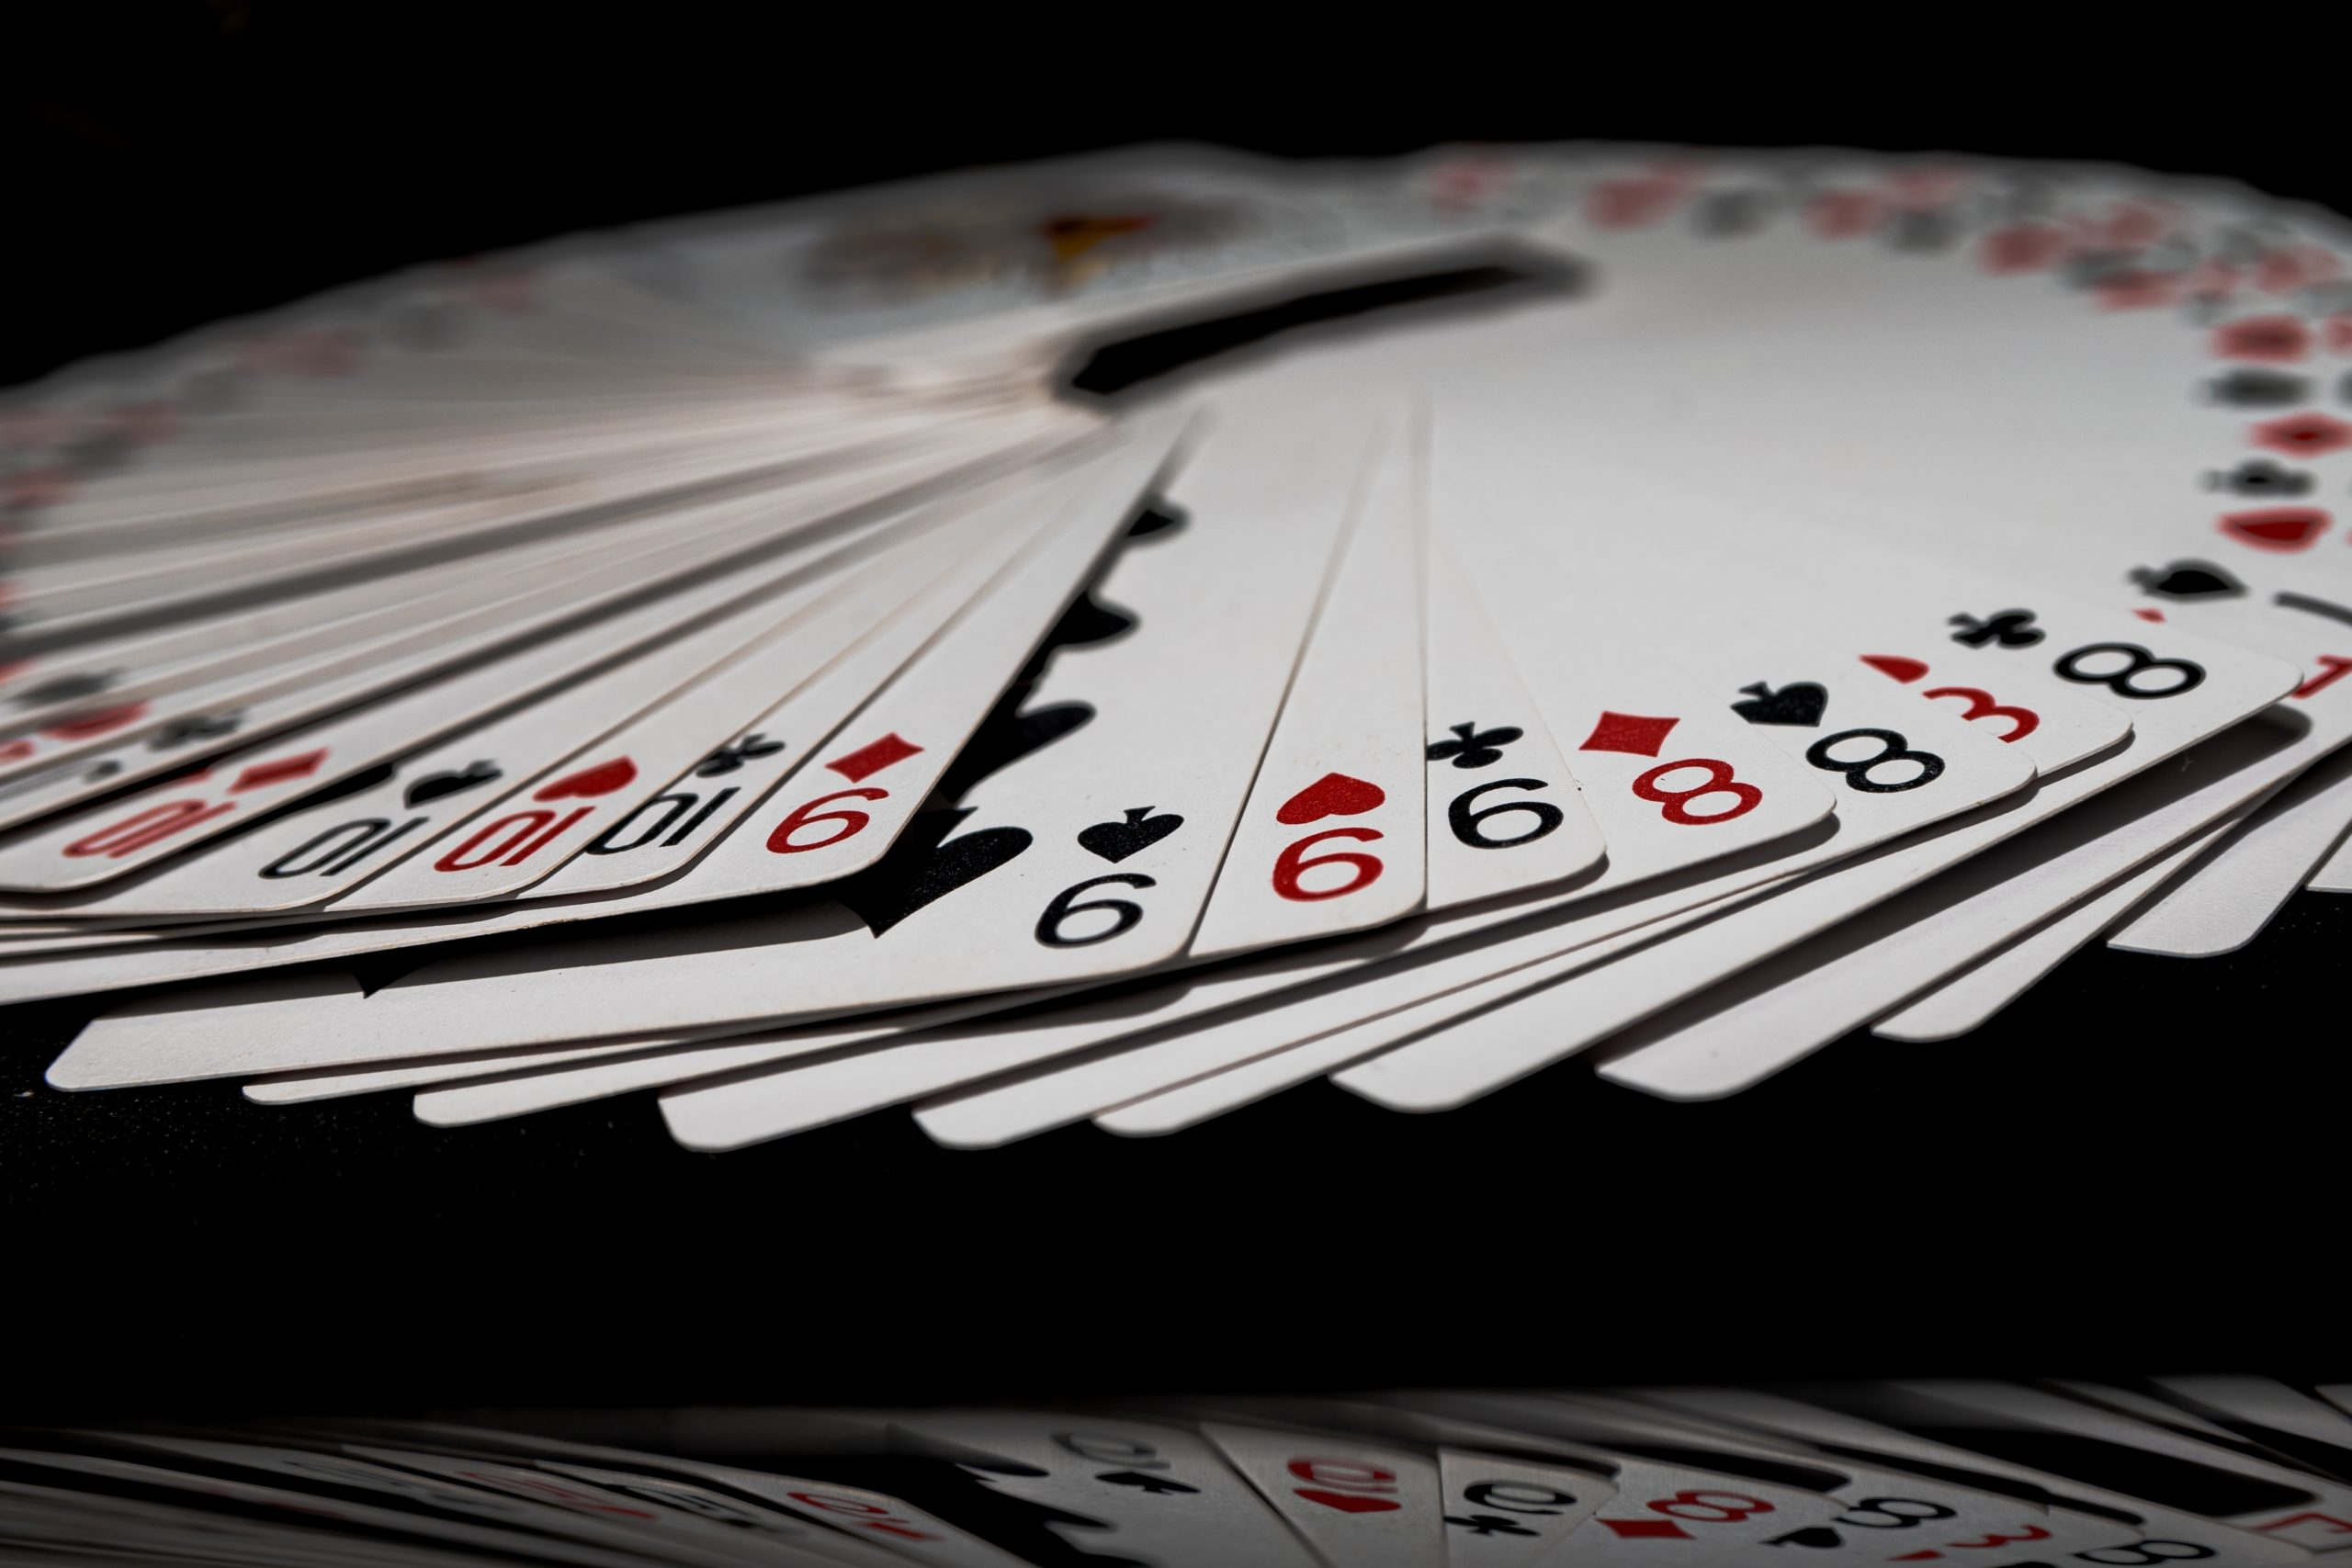 The rules of the classic game of blackjack